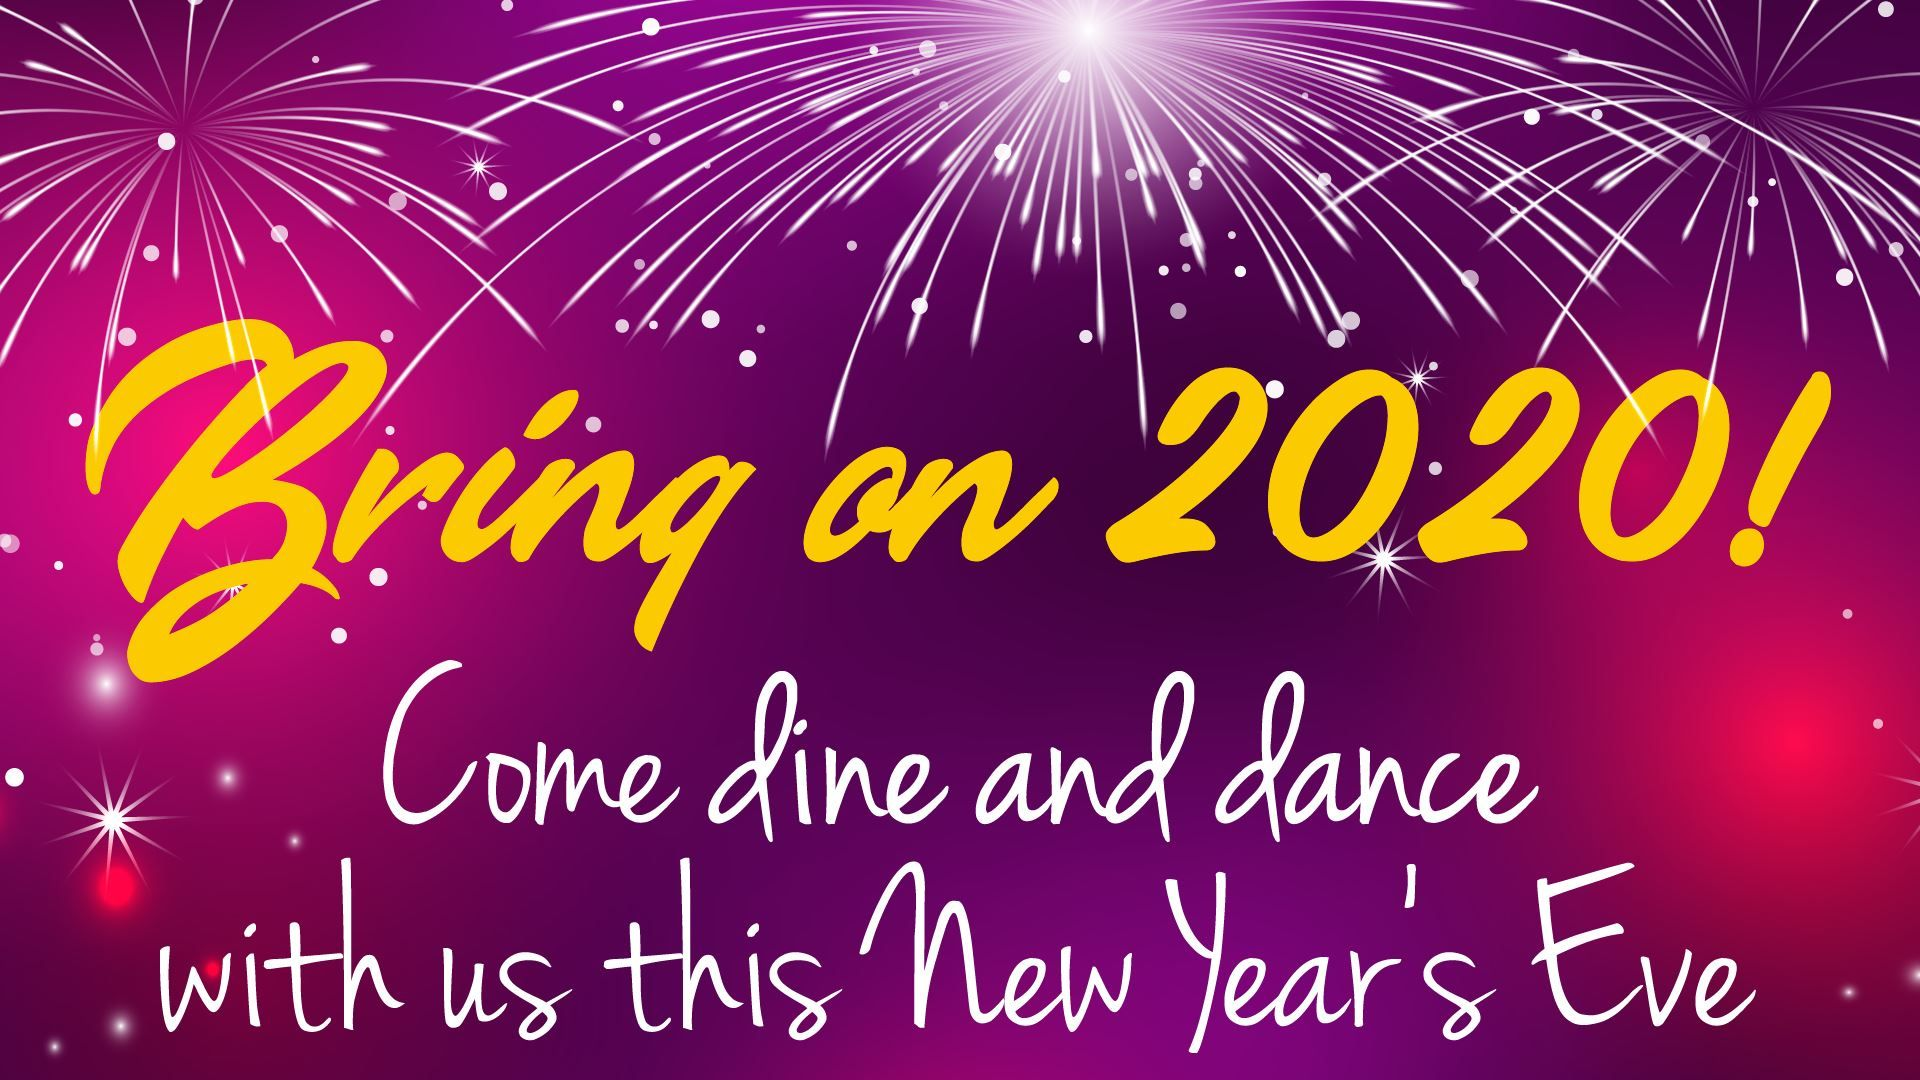 Still looking for something fun to do for New Year? We